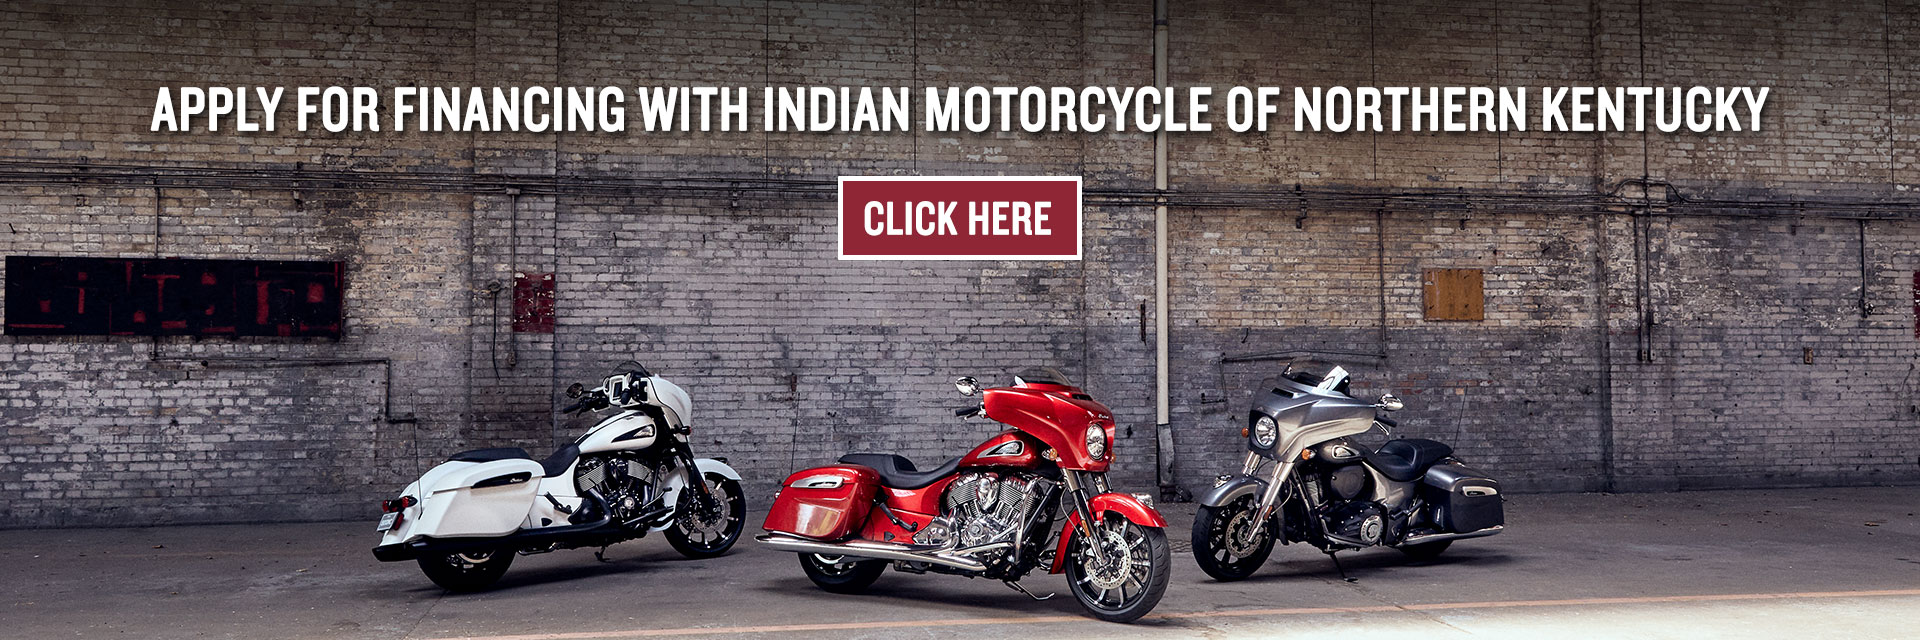 Apply for financing with Indian Motorcycle of Northern Kentucky